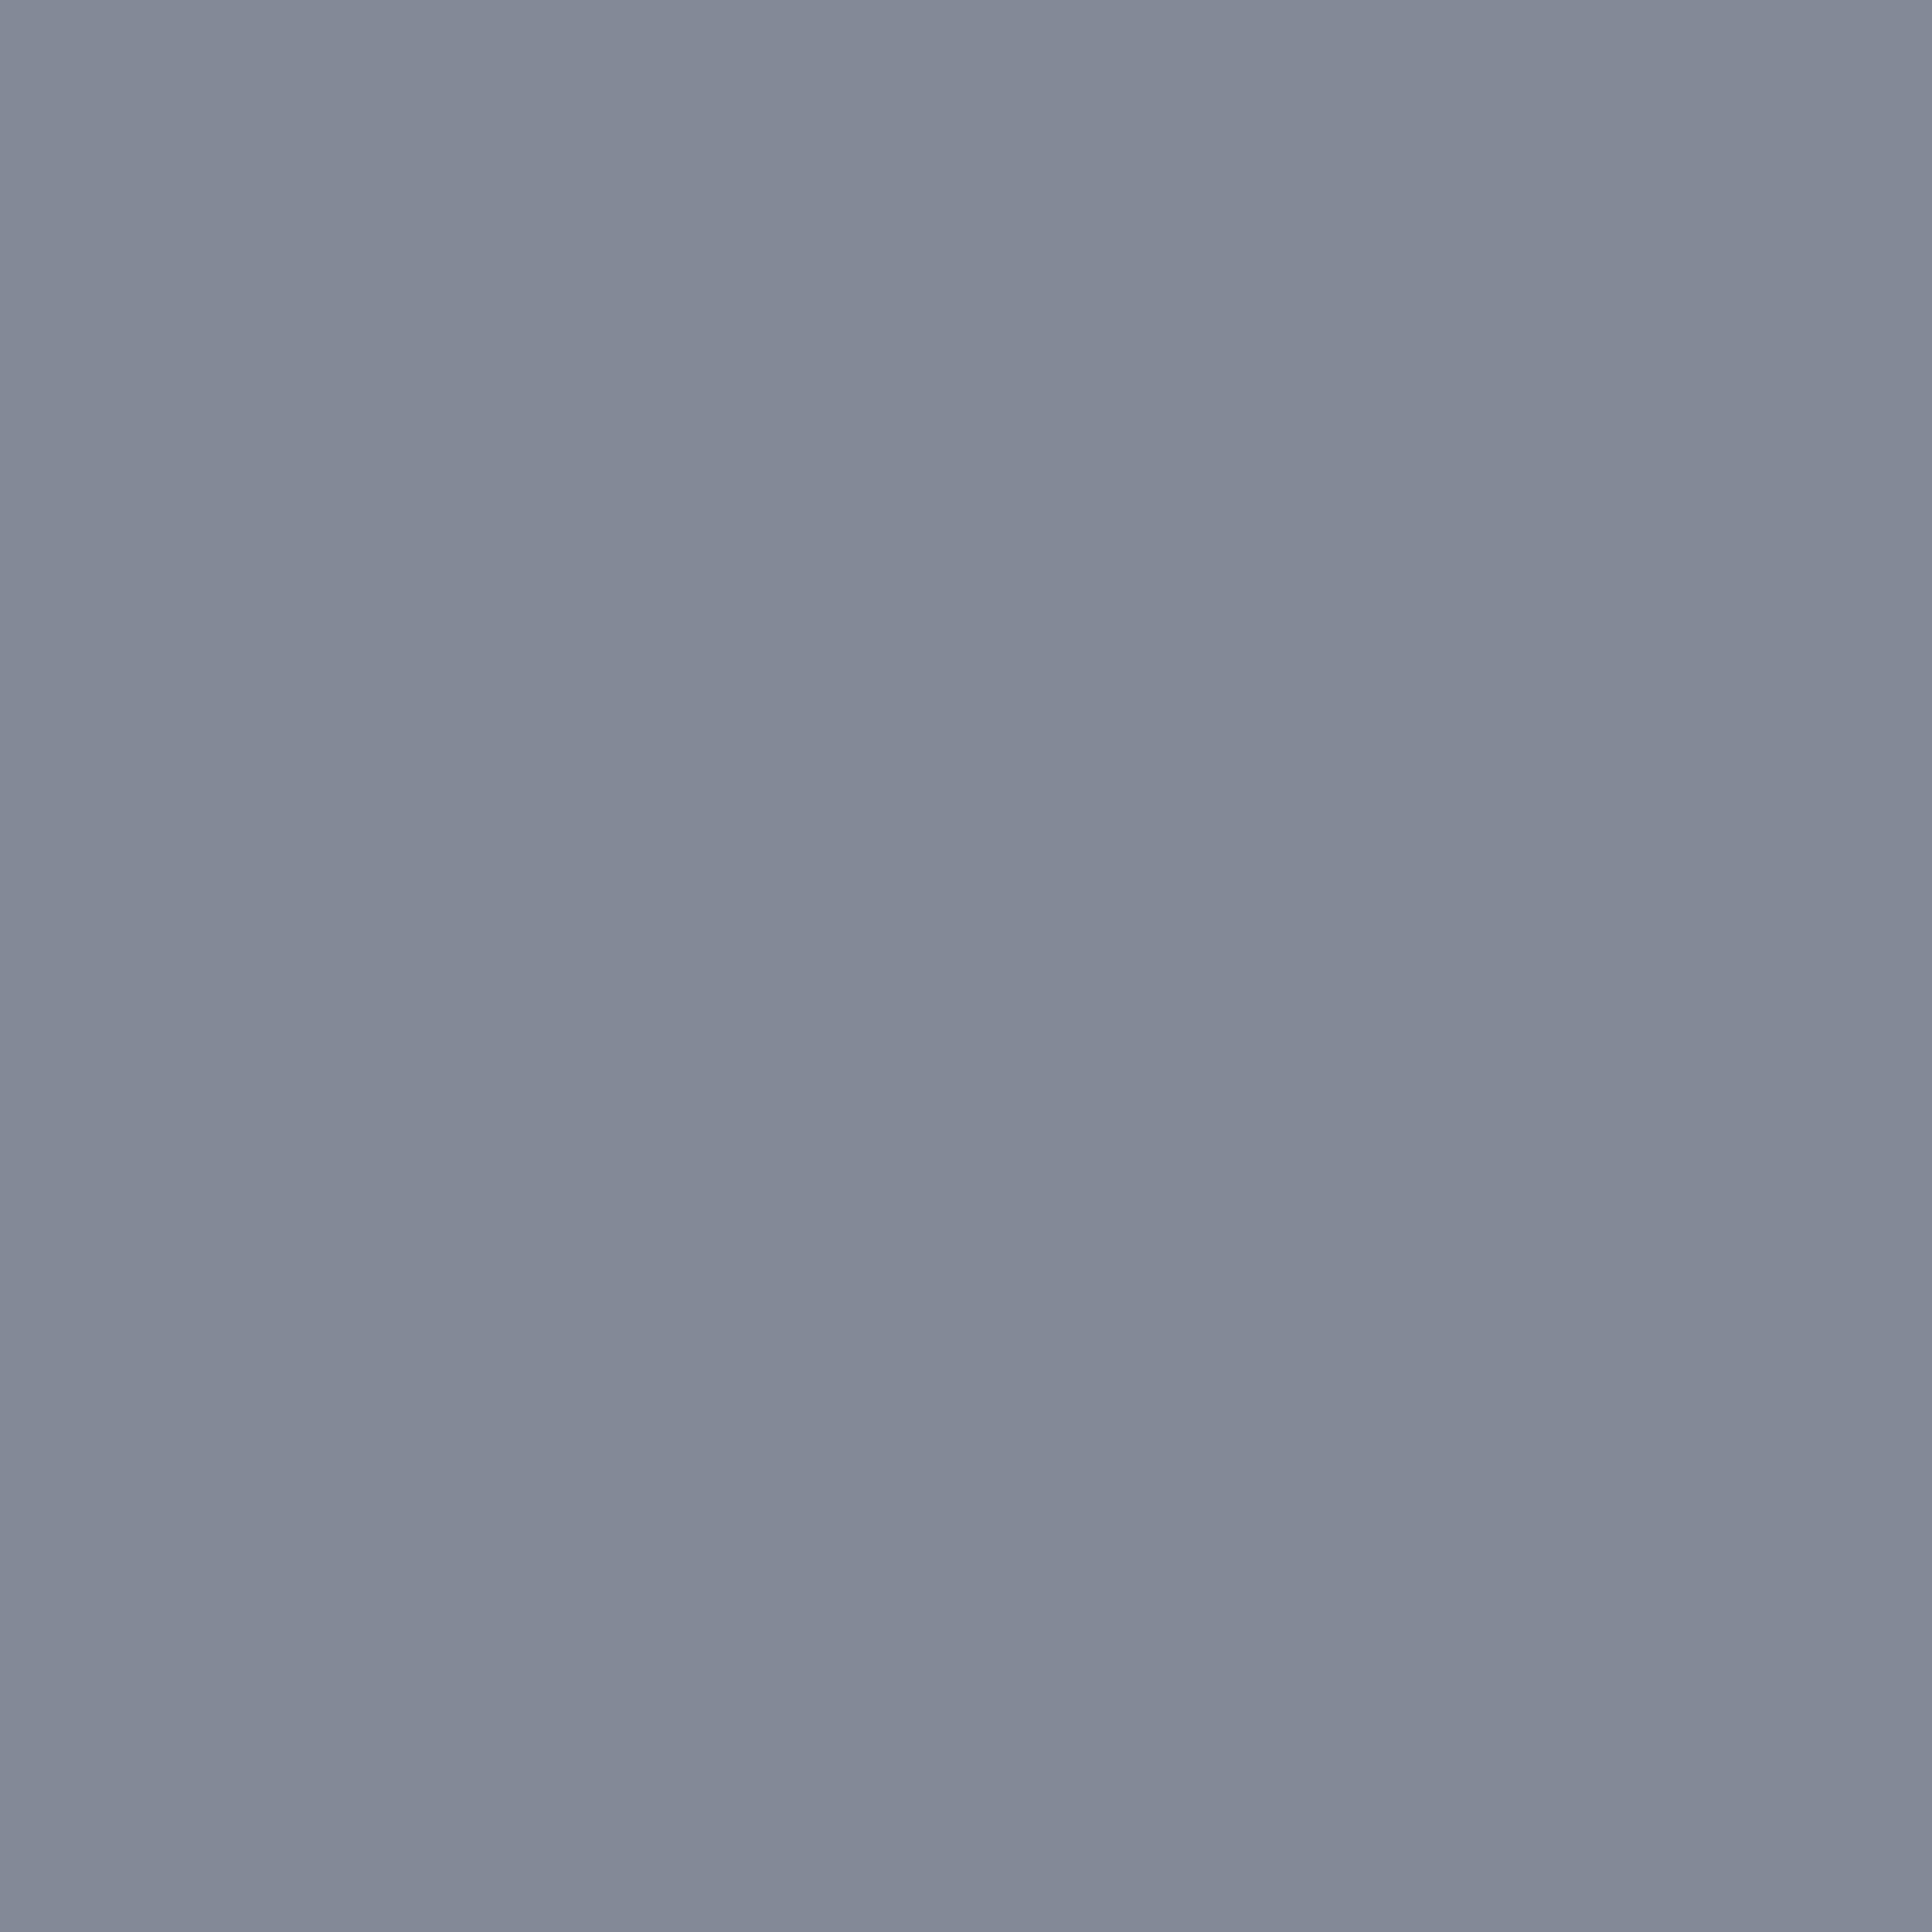 2732x2732 Roman Silver Solid Color Background